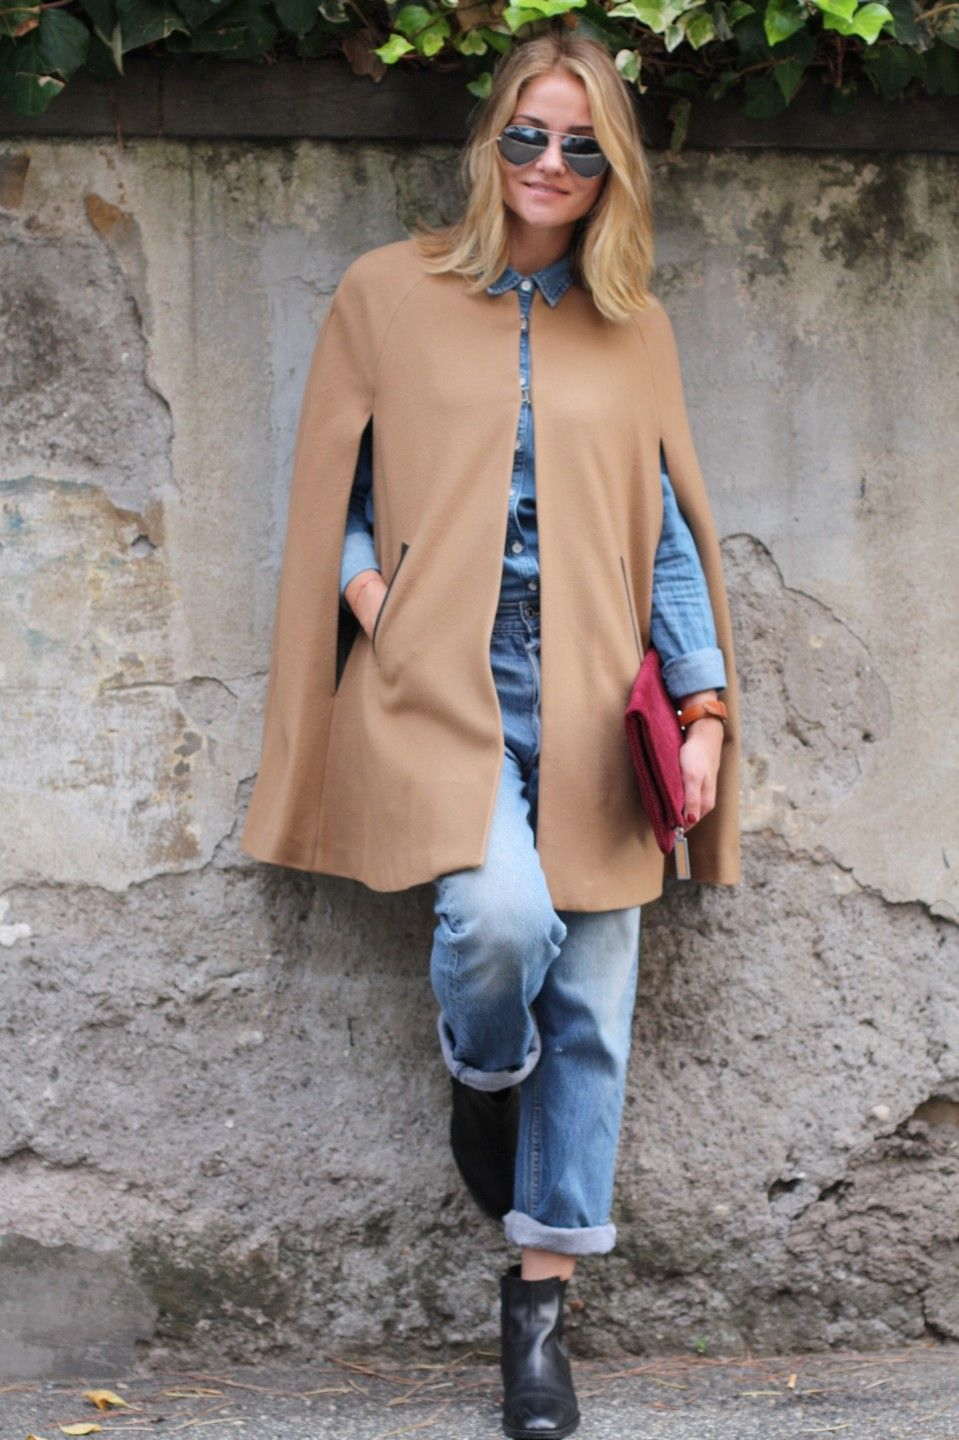 ab67f3e96cb0 Tomboy Style - Mango Trimmed Wool-Blend Cape    Gap Chambray Shirt     Vintage 501 Levi Jeans    J.Crew Chelsea Boots    August The Ravello Clutch     Ray-ban ...